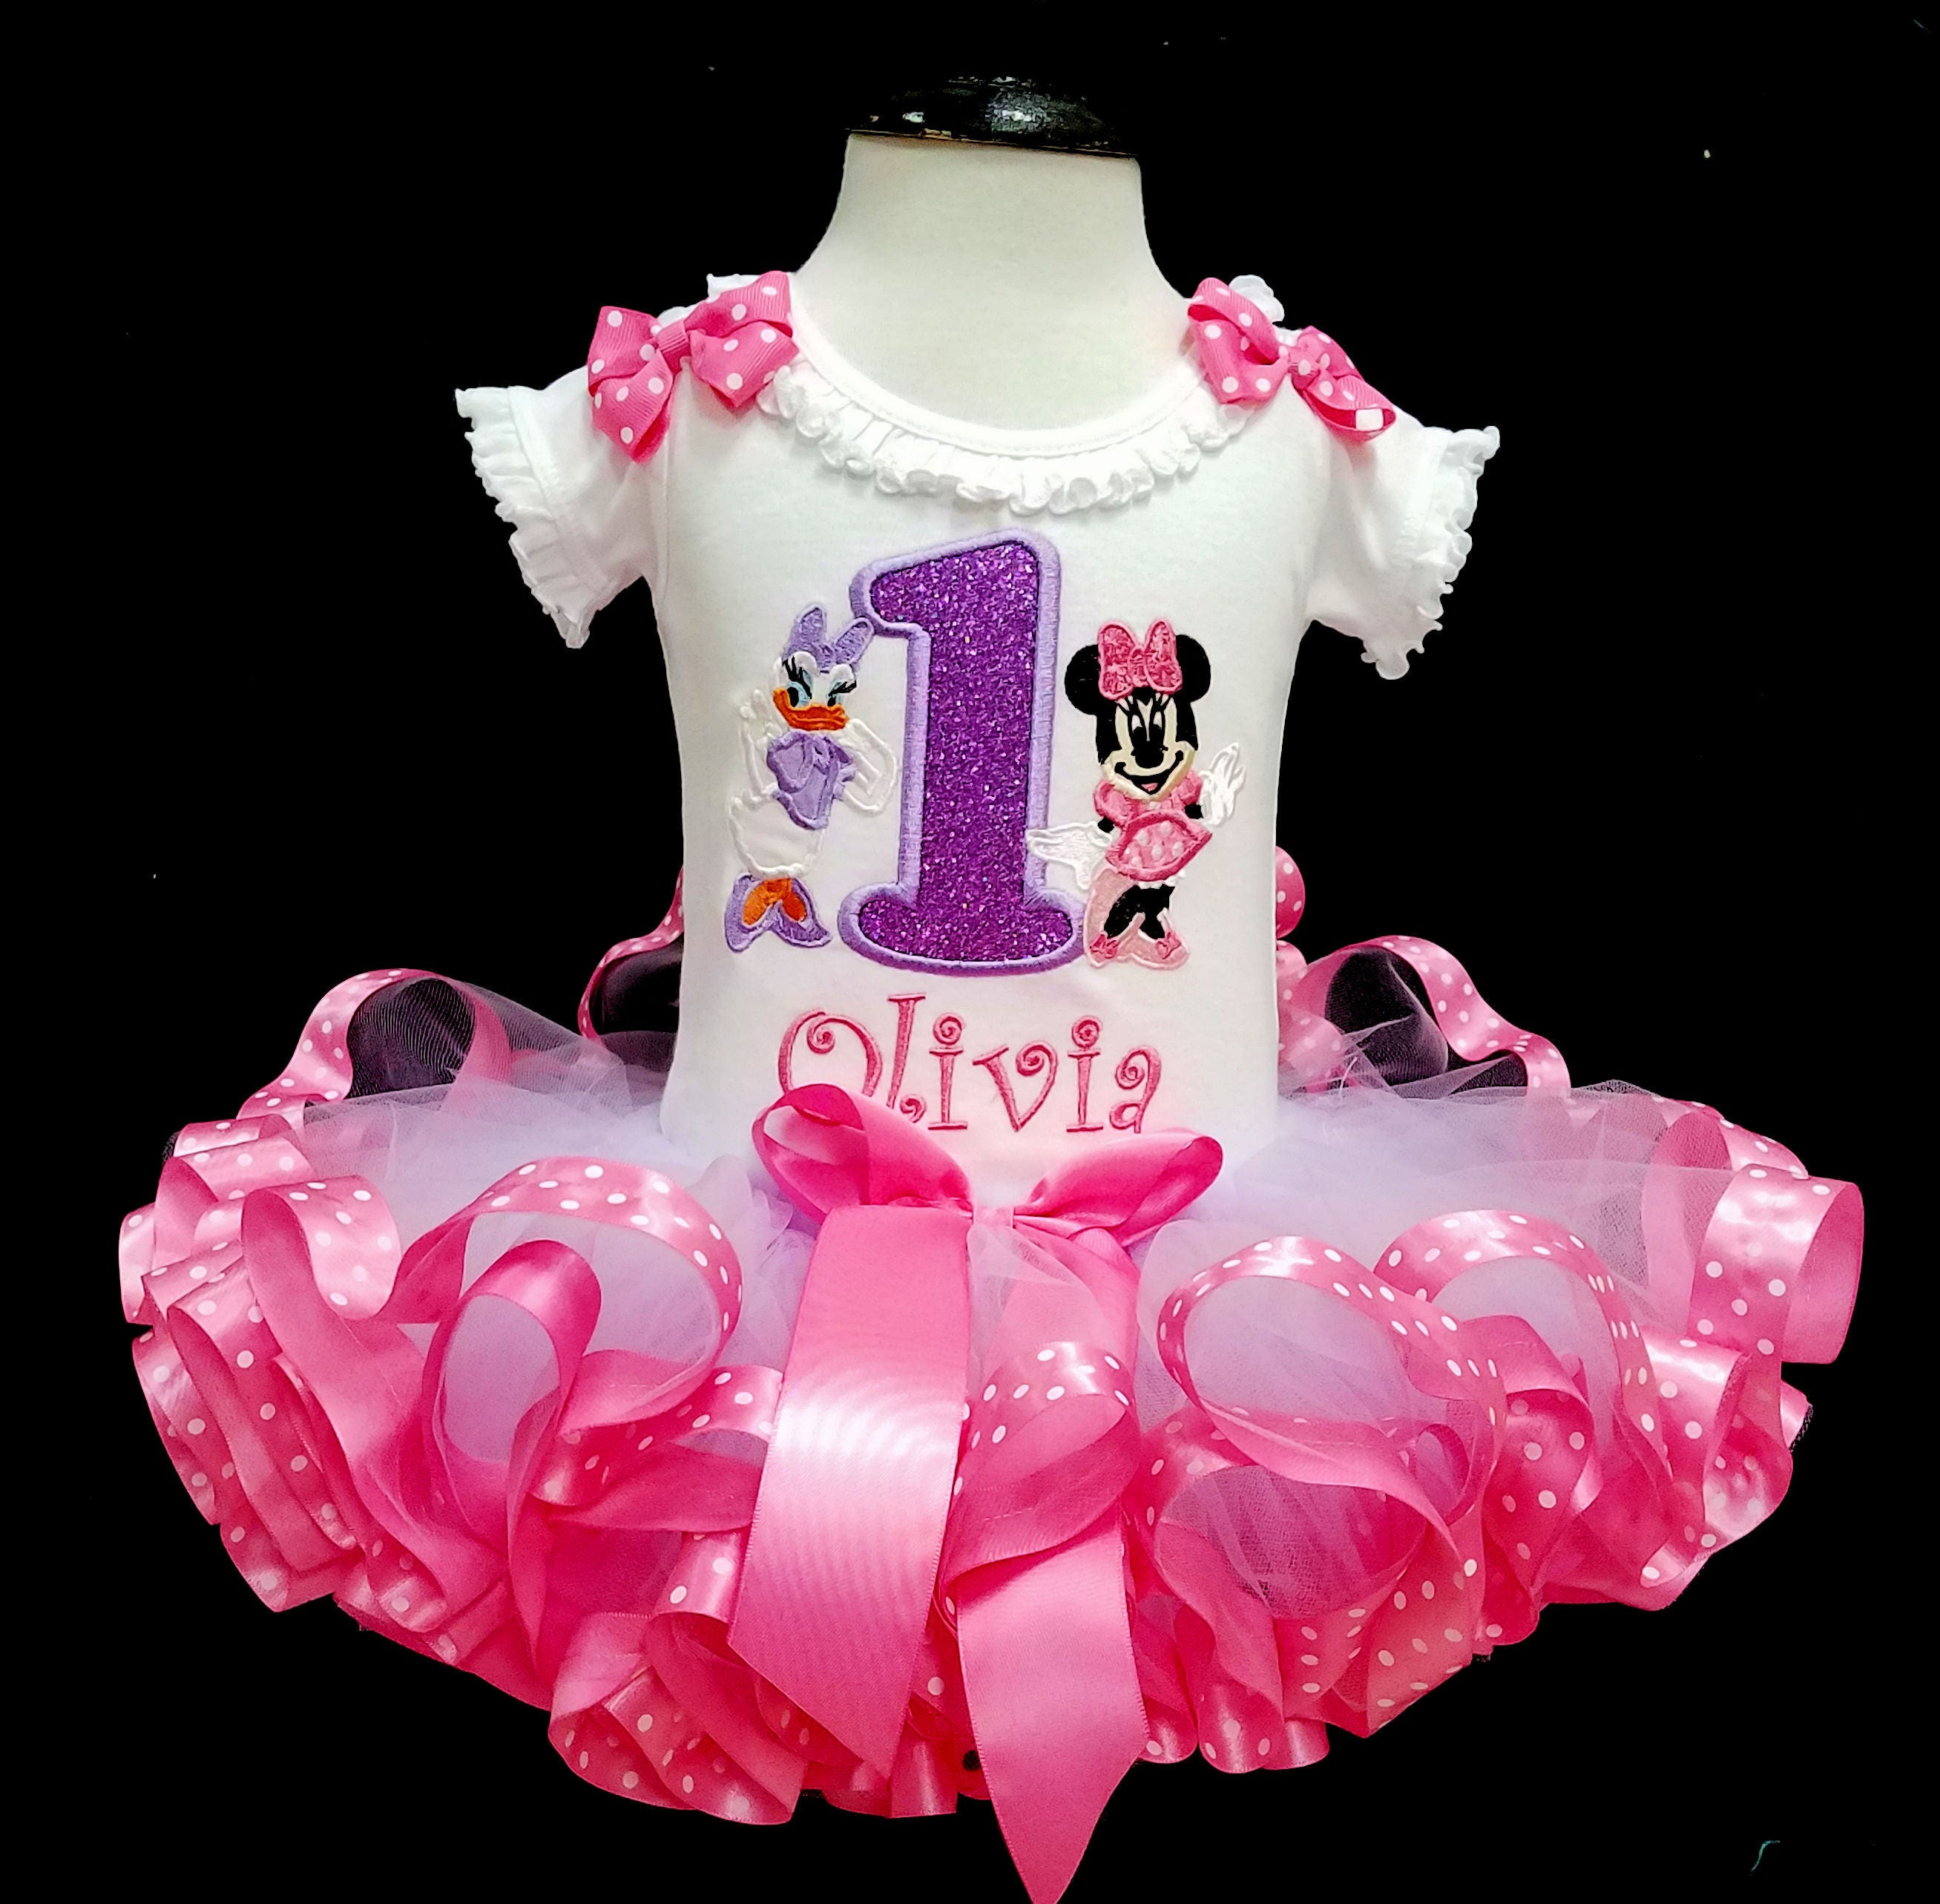 minnie mouse birthday outfit 1st birthday tutu outfit minnie mouse 1st birthday outfit daisy duck minnie mouse shirt ribbon trimmed tutu set